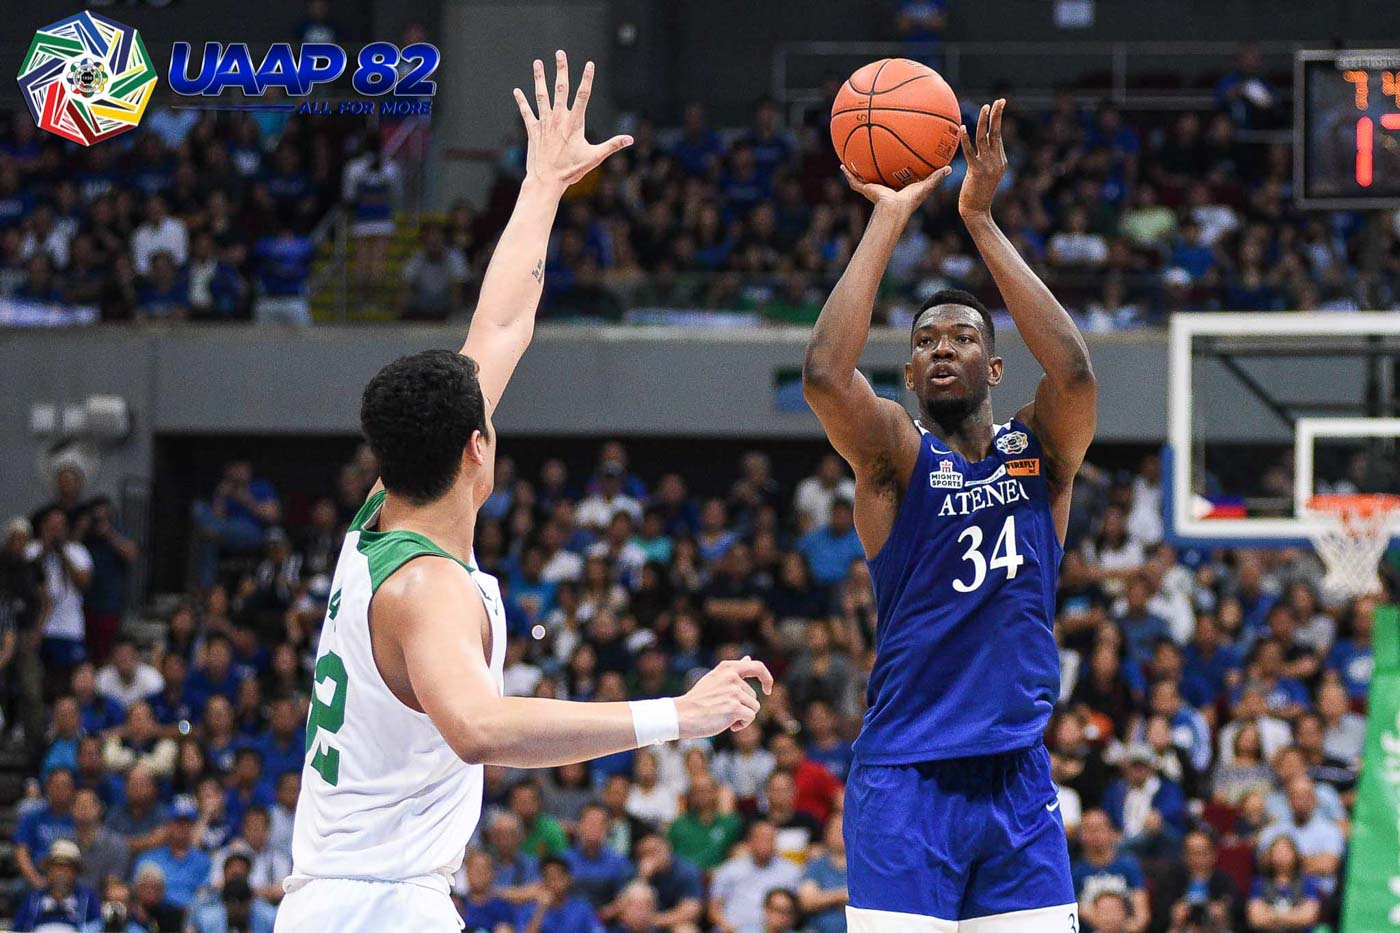 USUAL NUMBERS. Ange Kouame proves to be another reliable, dropping a double-double outing of 10 points, 14 boards, and 3 blocks. Photo release